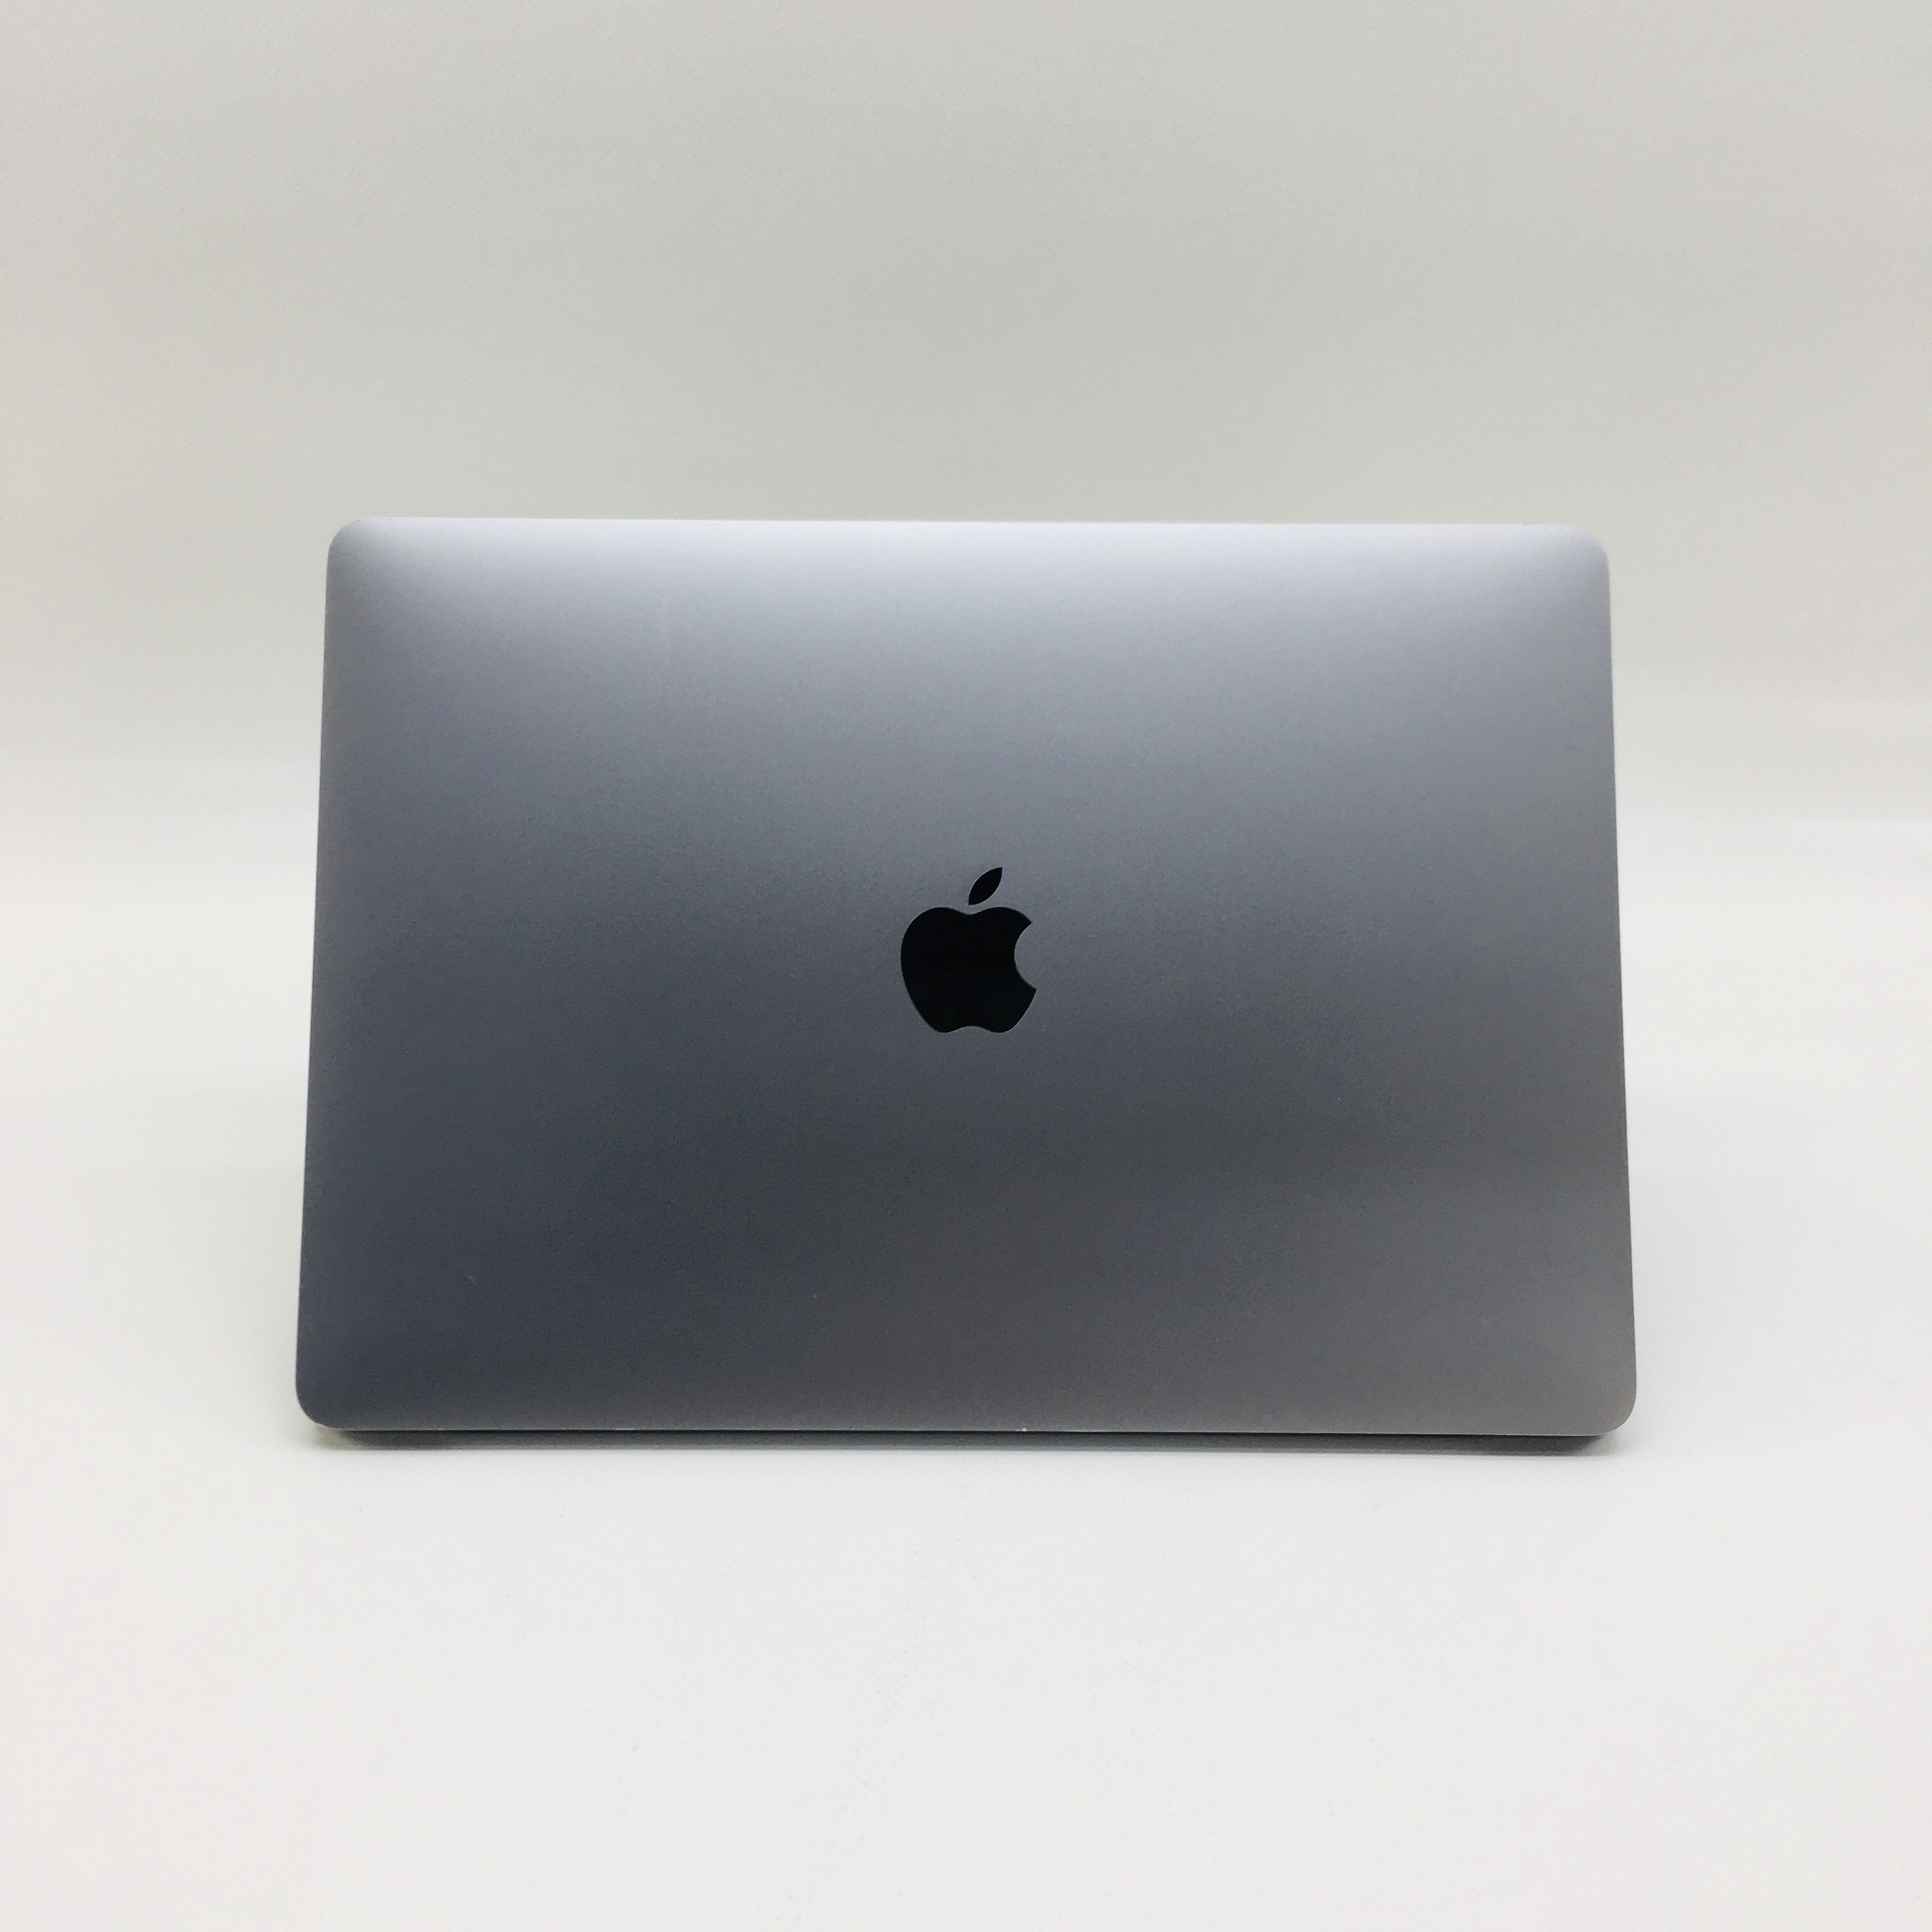 "MacBook Pro 13"" 4TBT Mid 2017 (Intel Core i5 3.1 GHz 8 GB RAM 256 GB SSD), Space Gray, Intel Core i5 3.1 GHz, 8 GB RAM, 256 GB SSD, image 4"